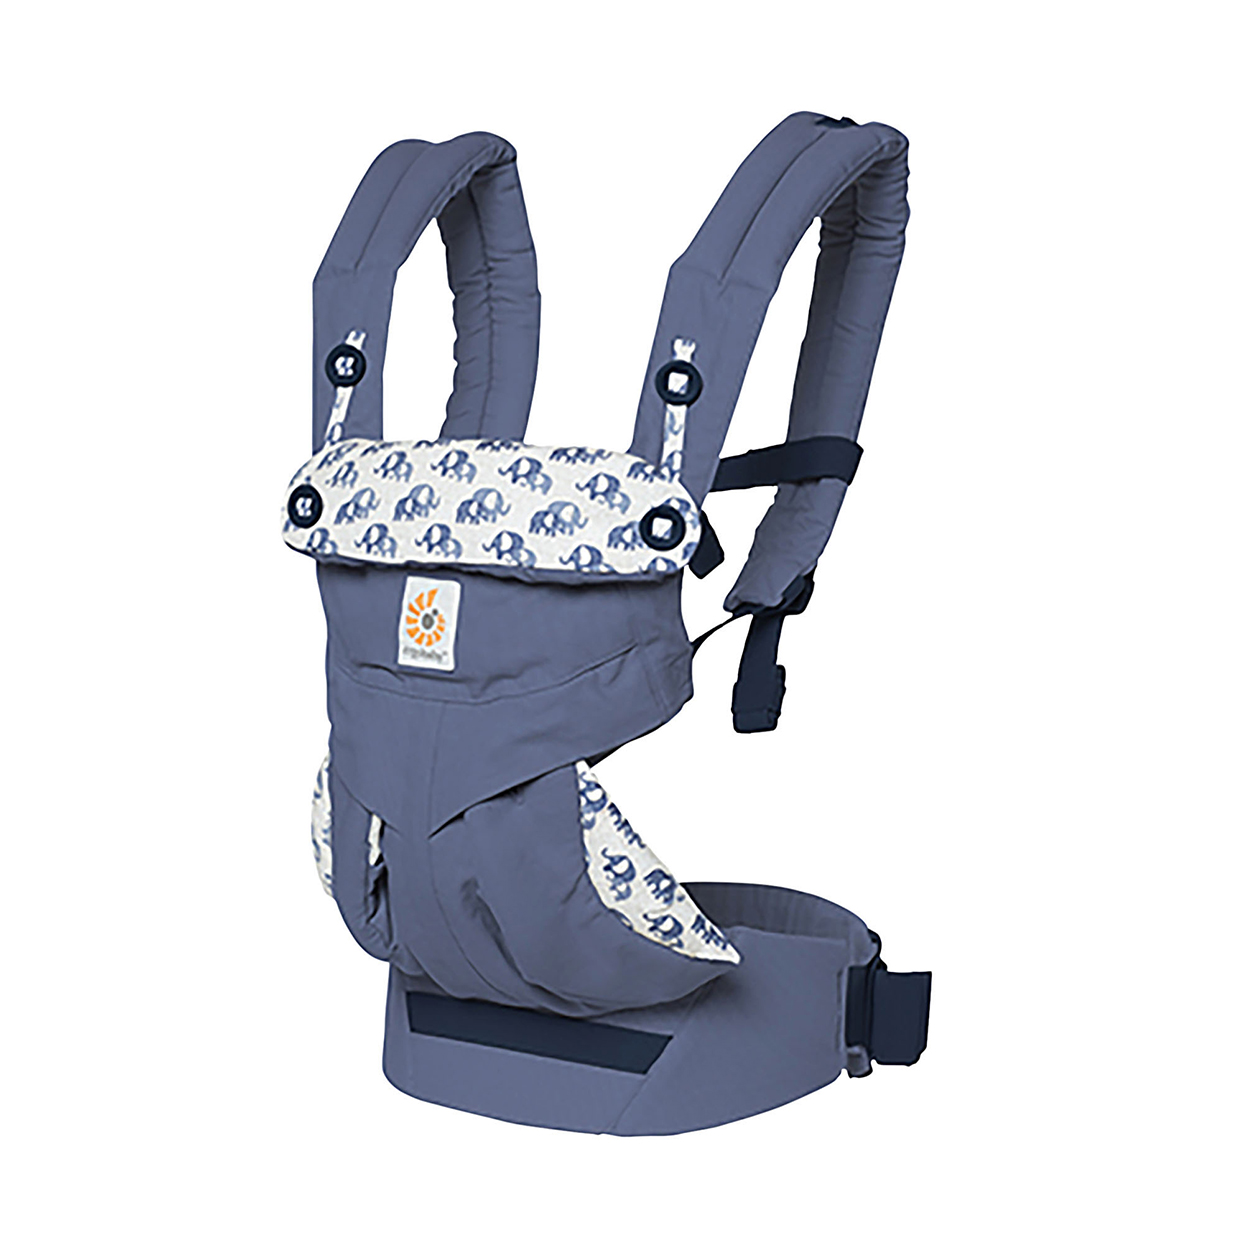 Best Infant Carrier: Ergobaby